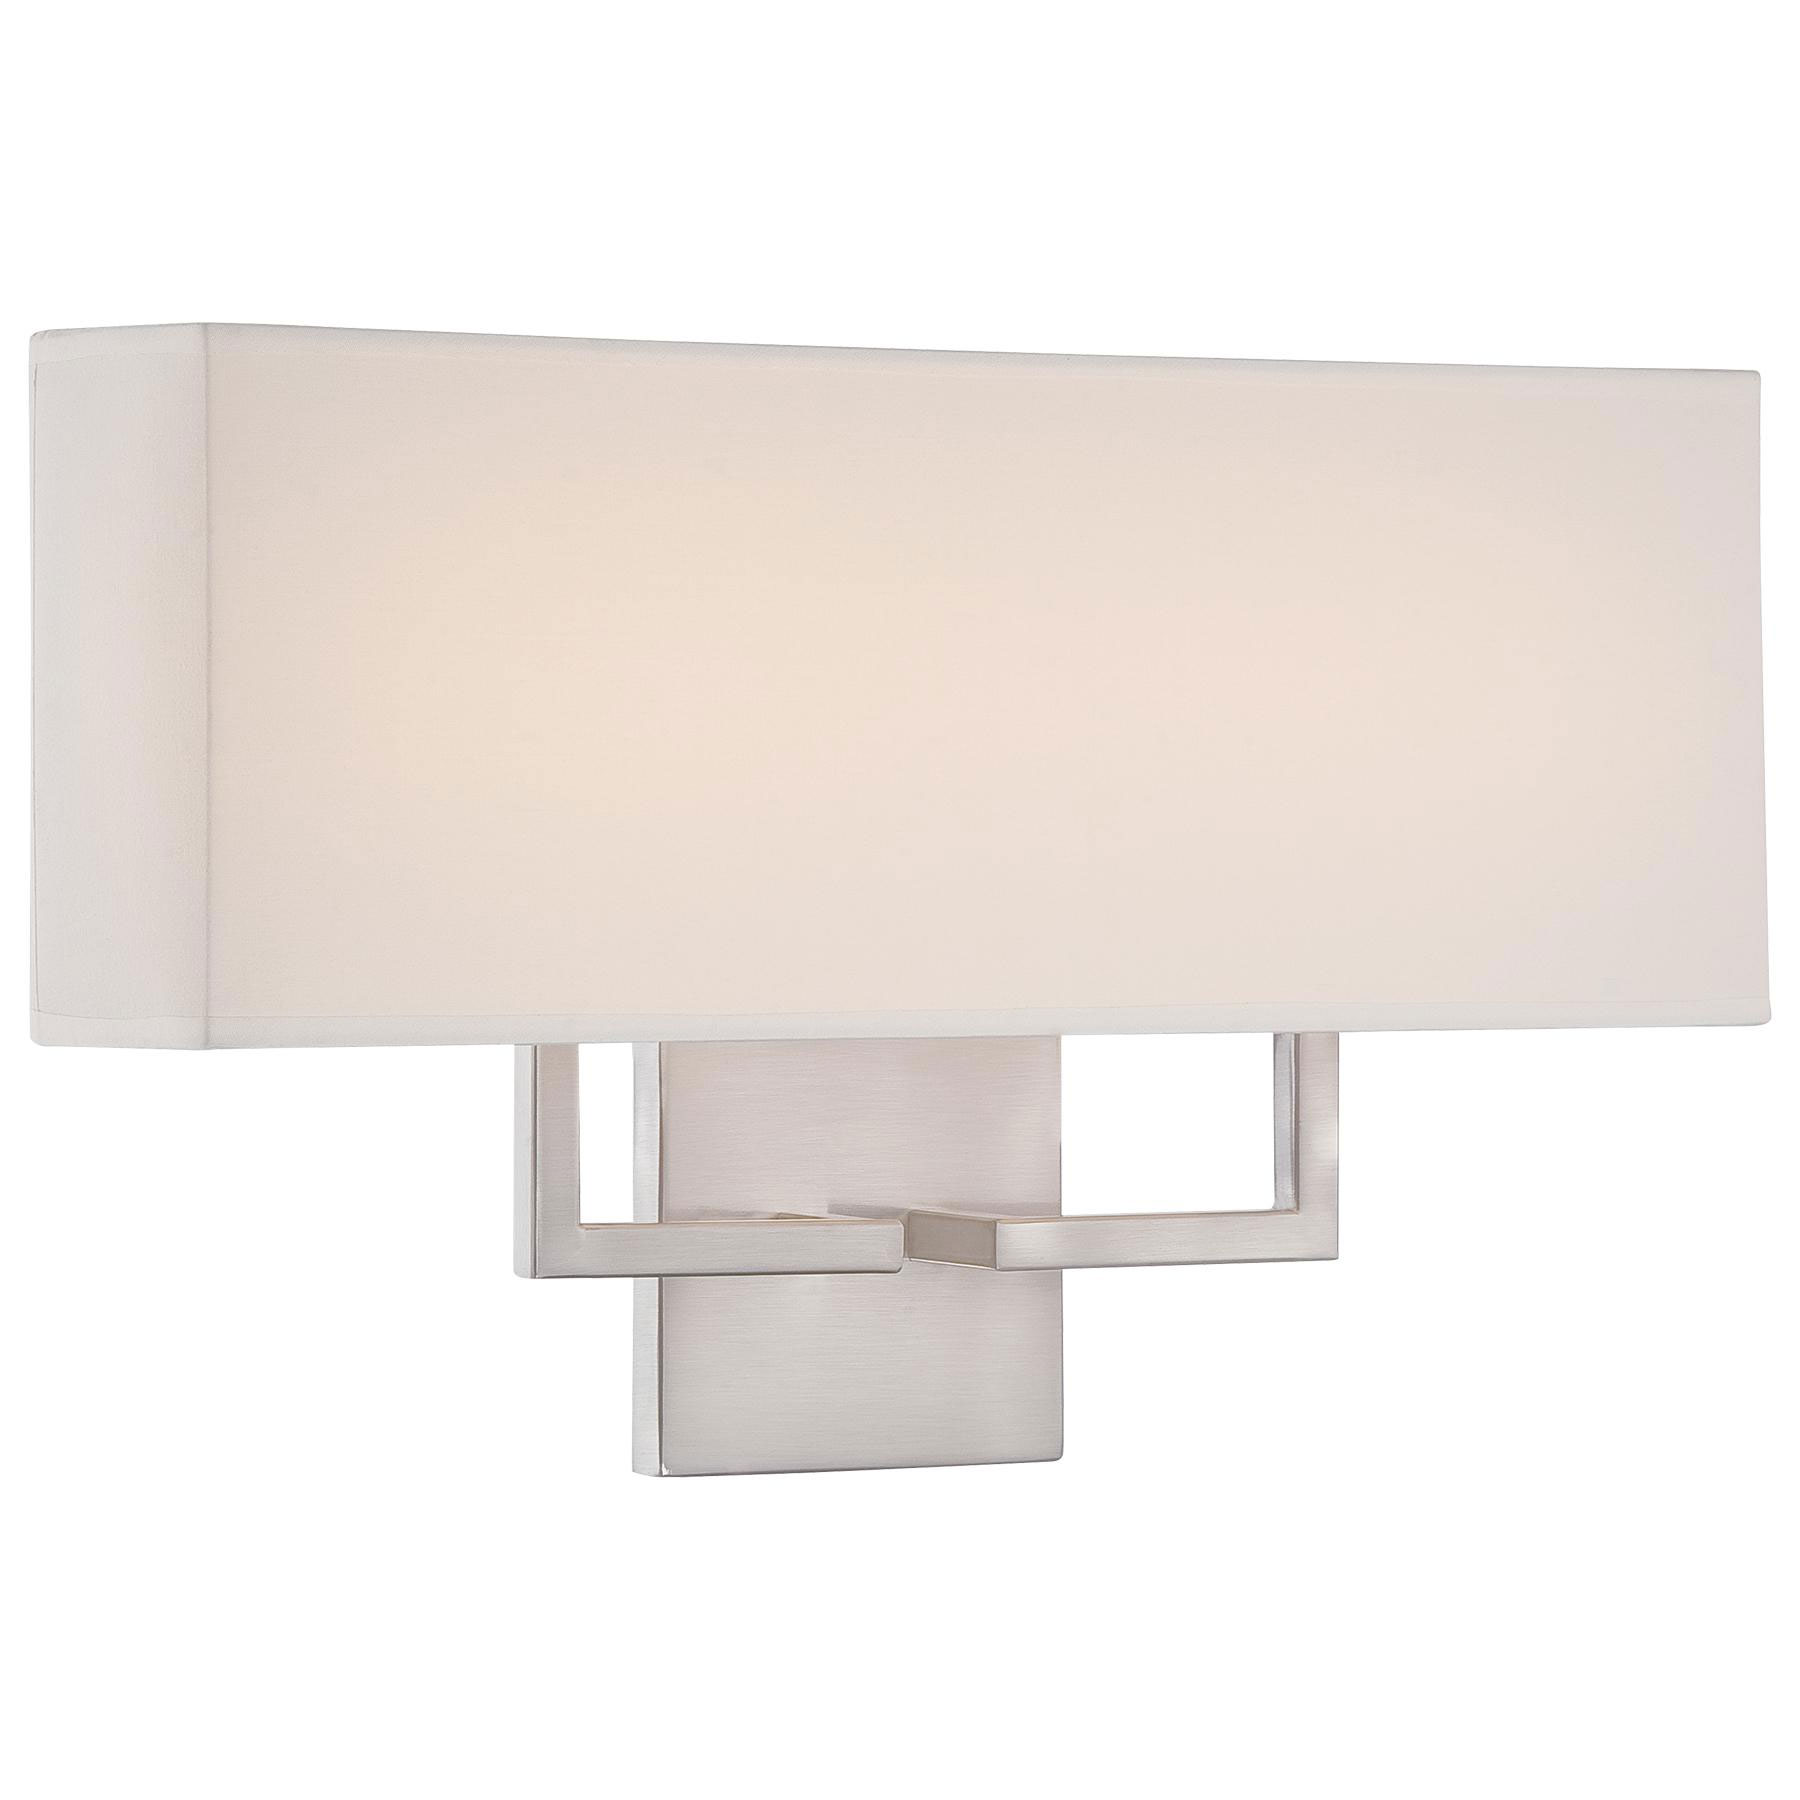 George Kovacs Wall Sconces : P472 LED Wall Sconce by George Kovacs P472-084-L